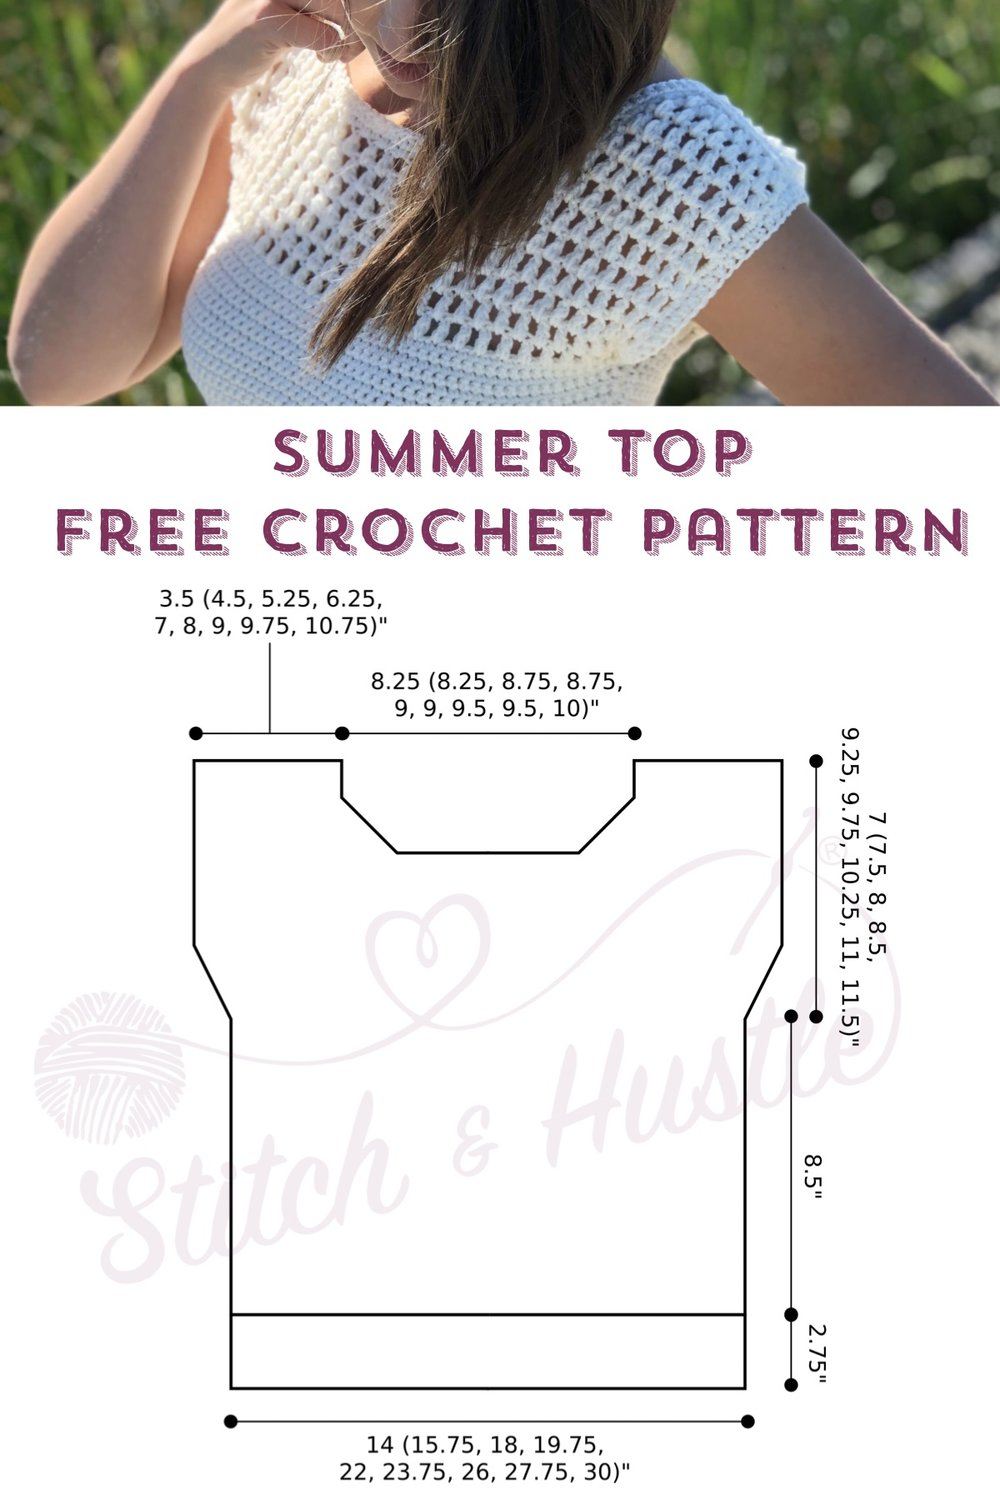 Townsville_Crochet_Puff_Stitch_Tank_Top_Free_Pattern_6.jpg